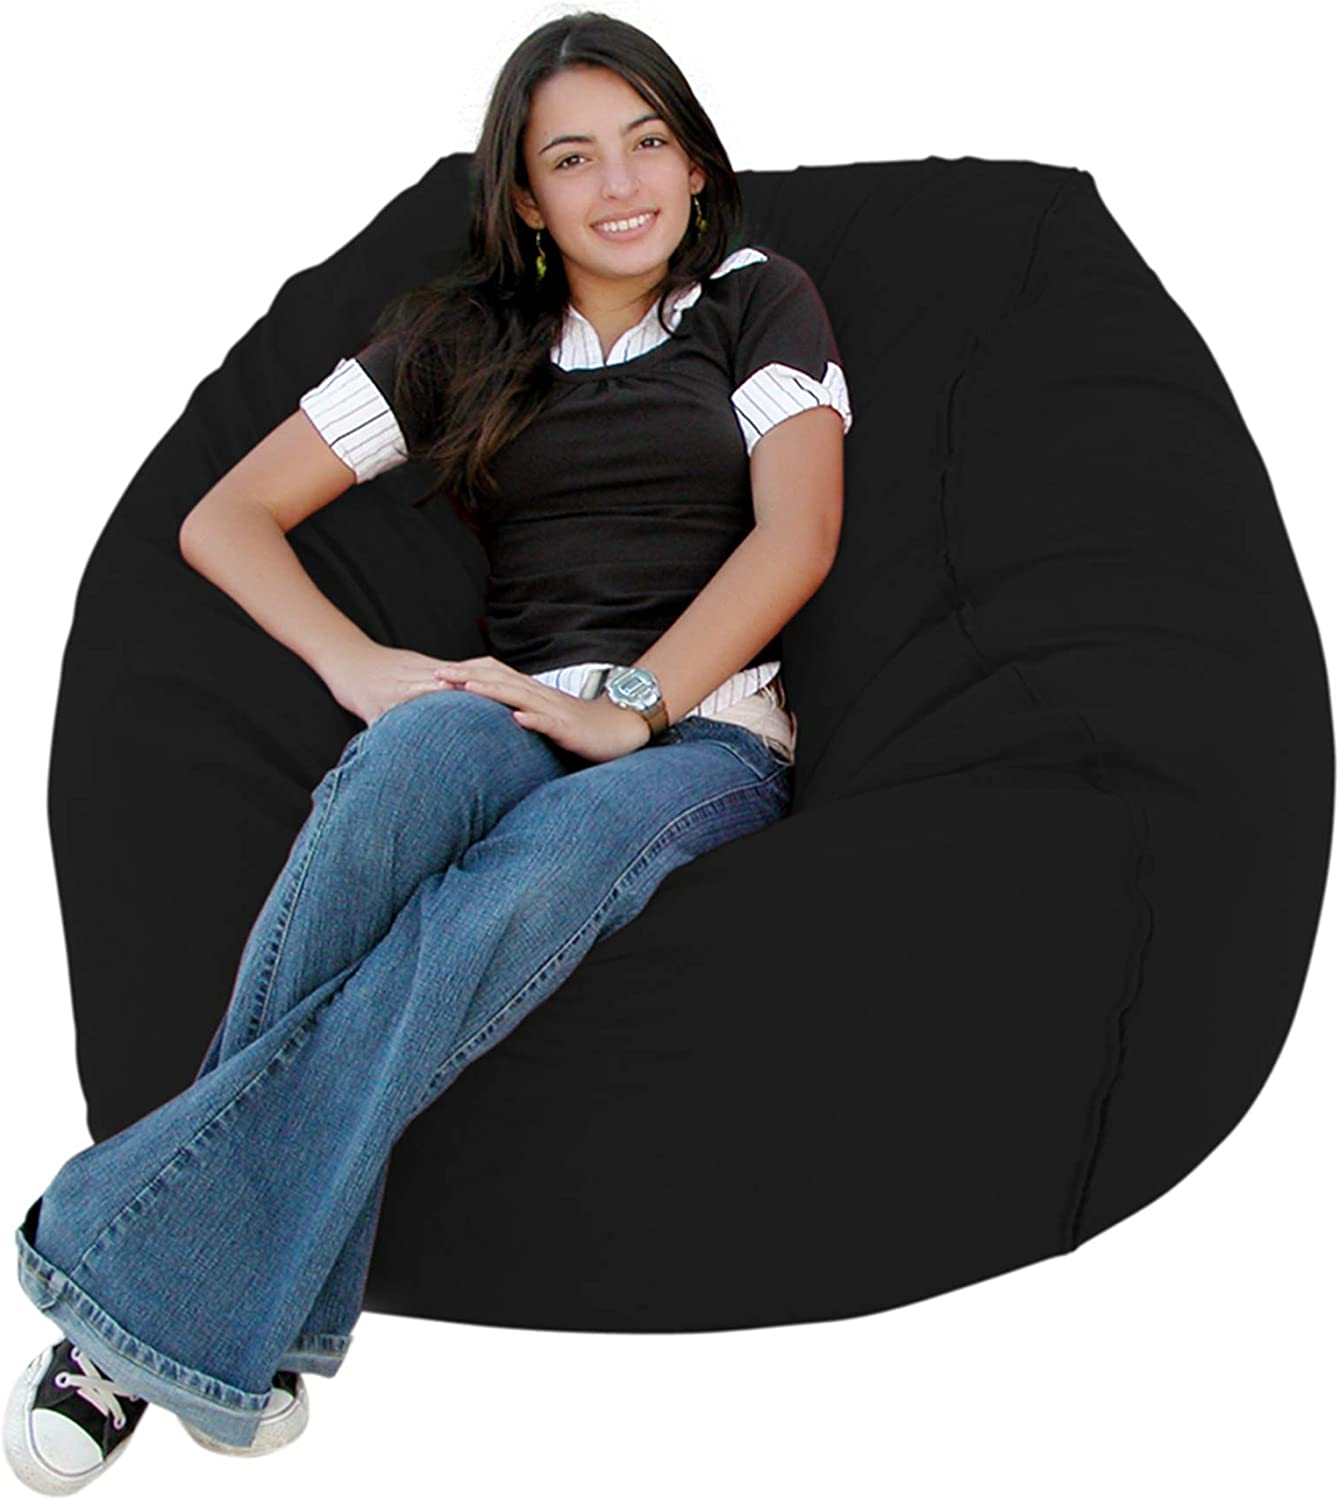 consumer reports bean bag chairs